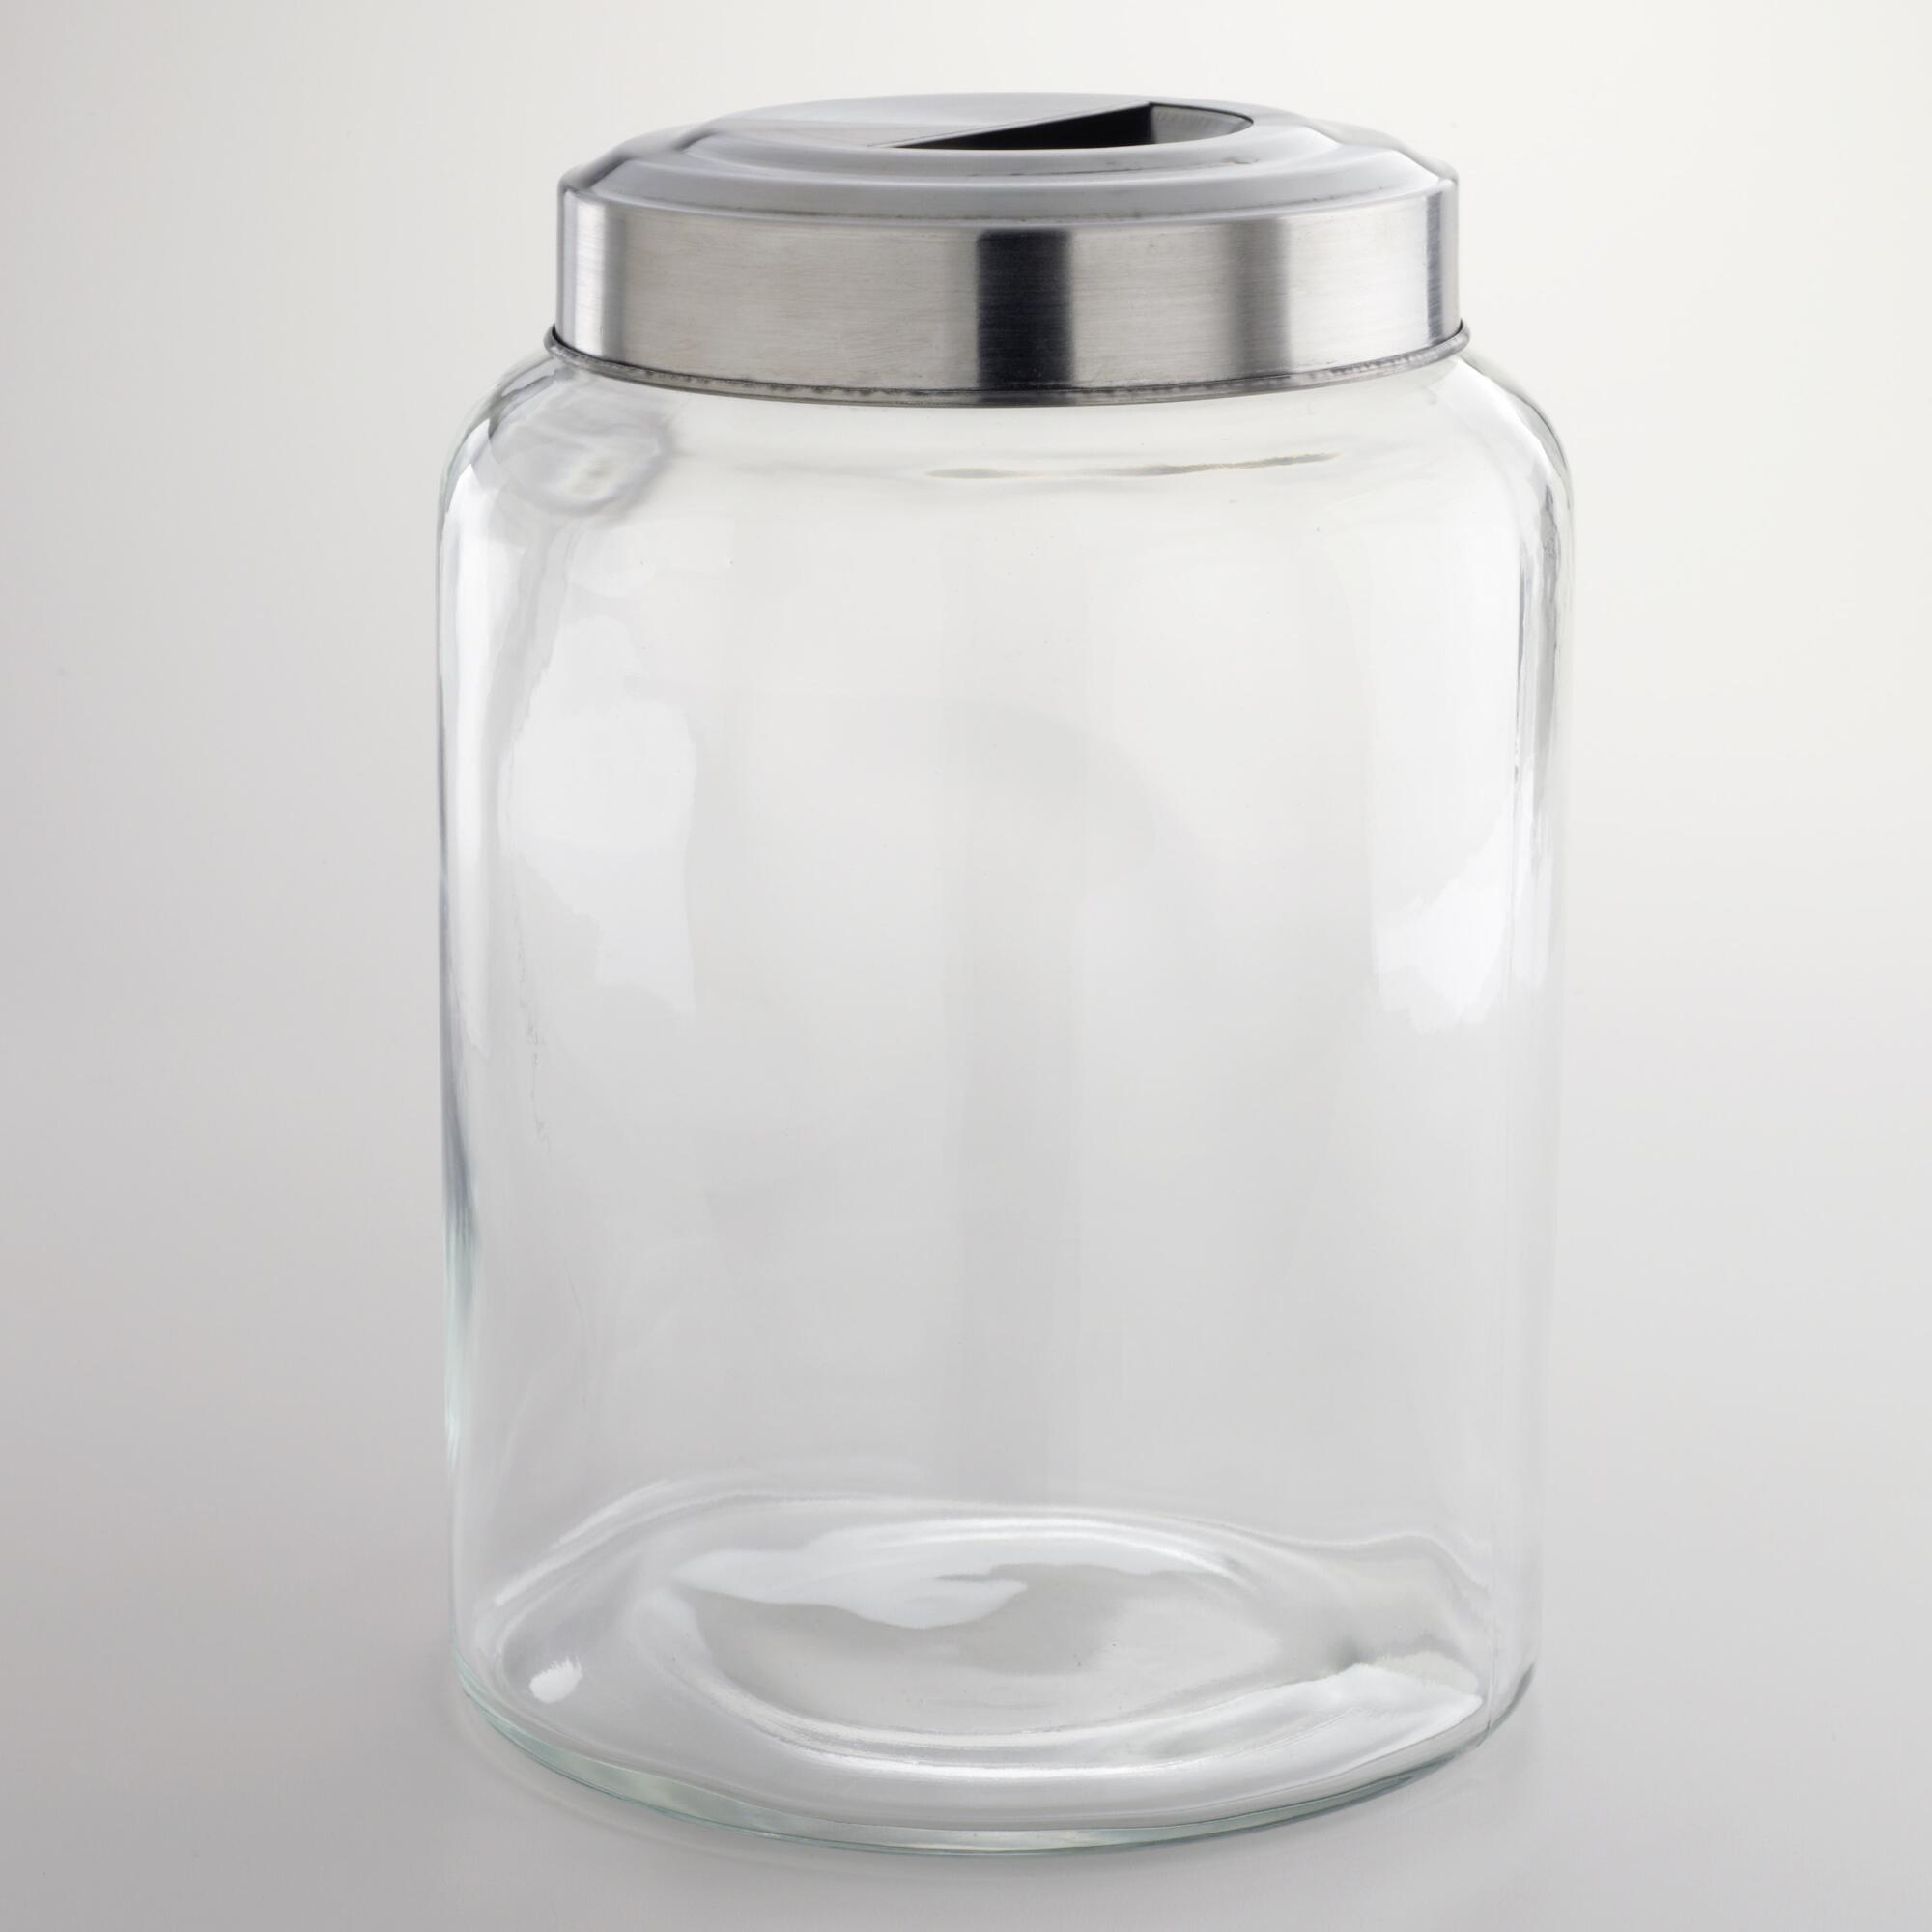 decorative glass jars for kitchen picnic table large jar by world market farmhouse home